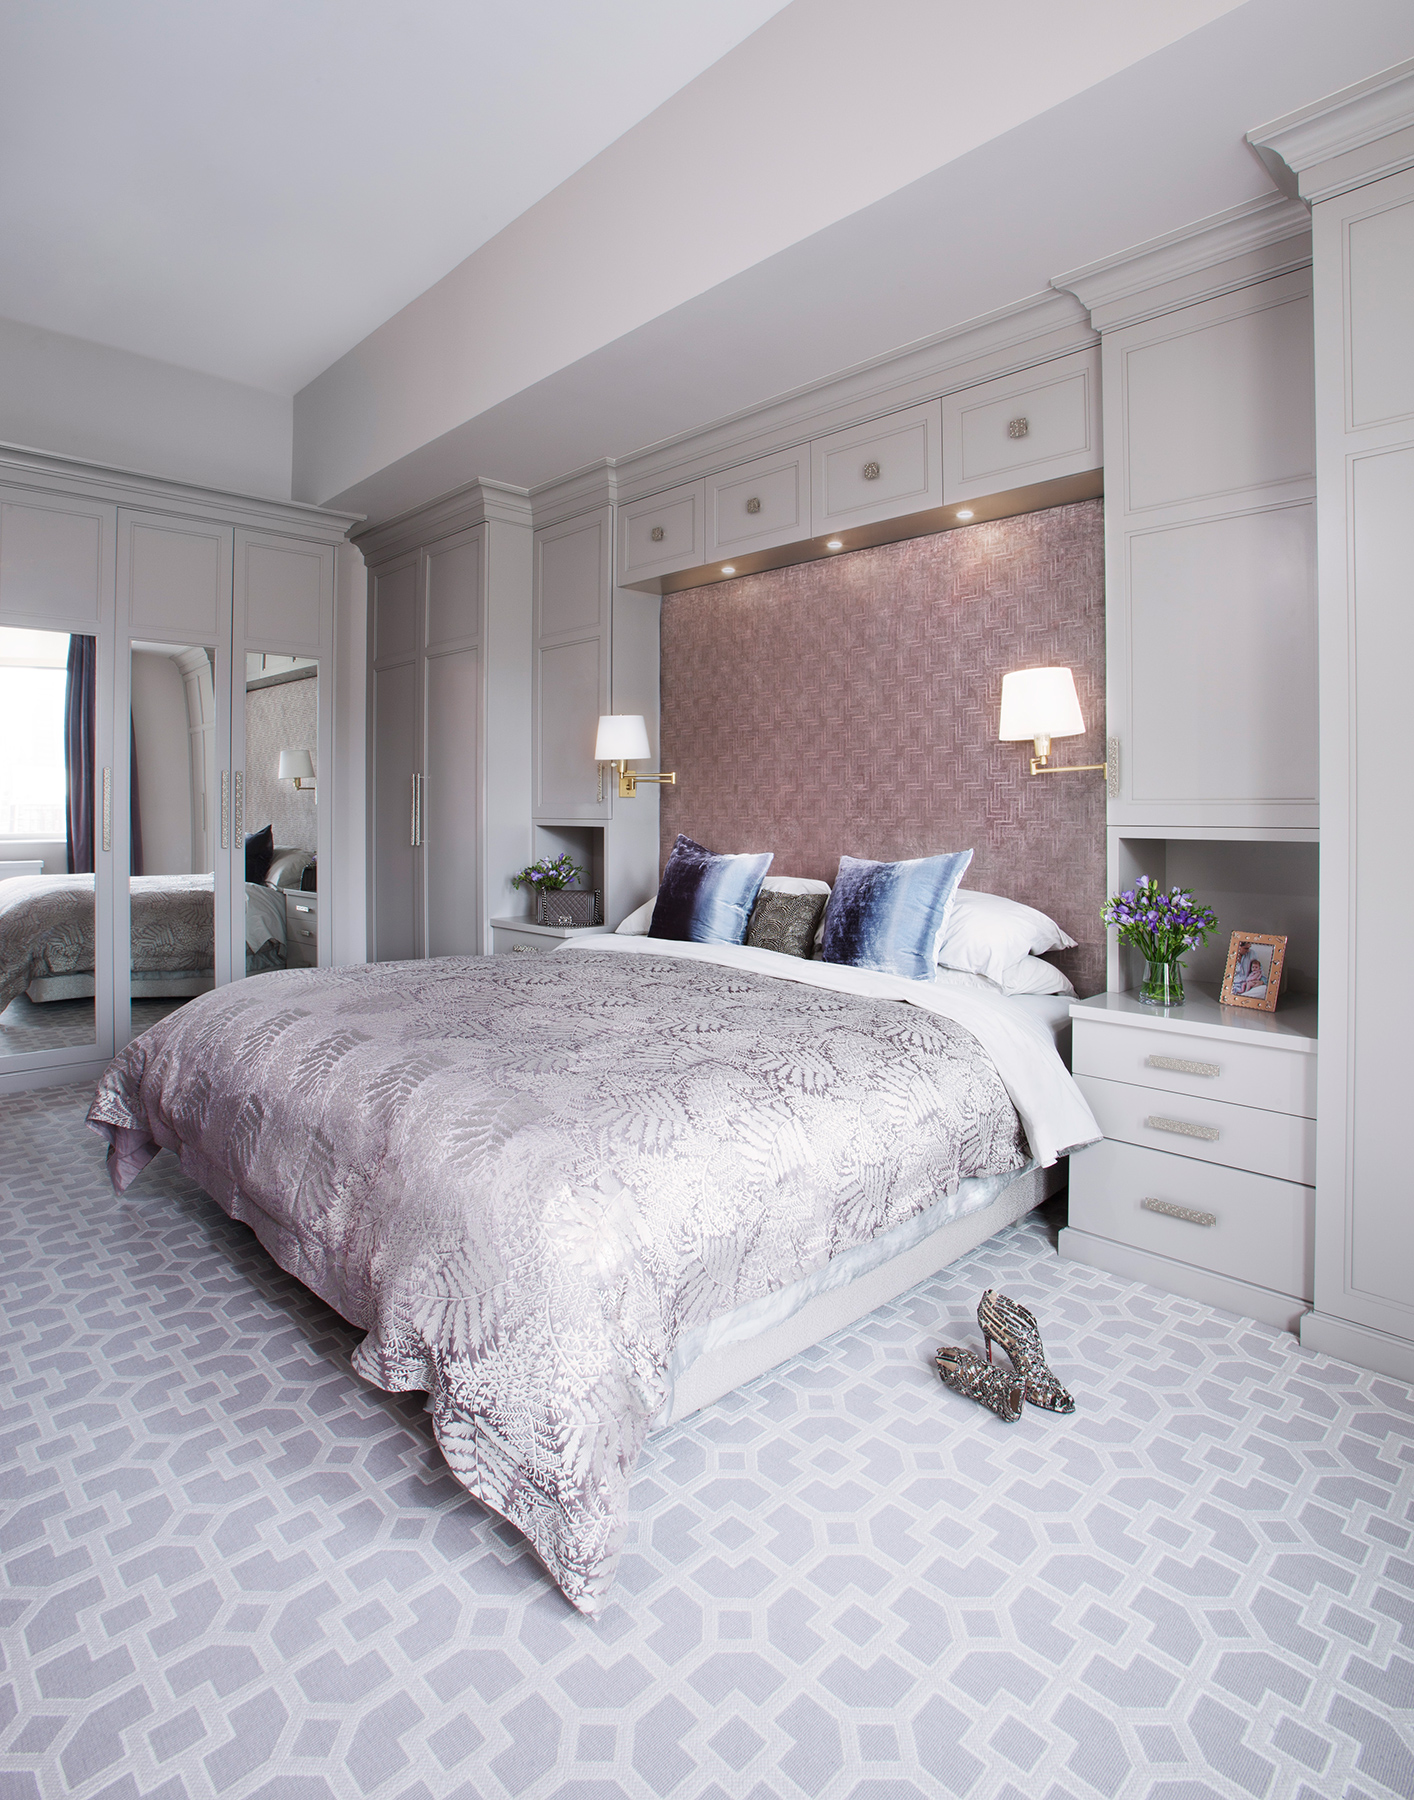 interior Design Photography in New York By Jonathan R. Bevkerman Design By Evelyn Benatar 7th Ave_Master Bed Room 02.jpg